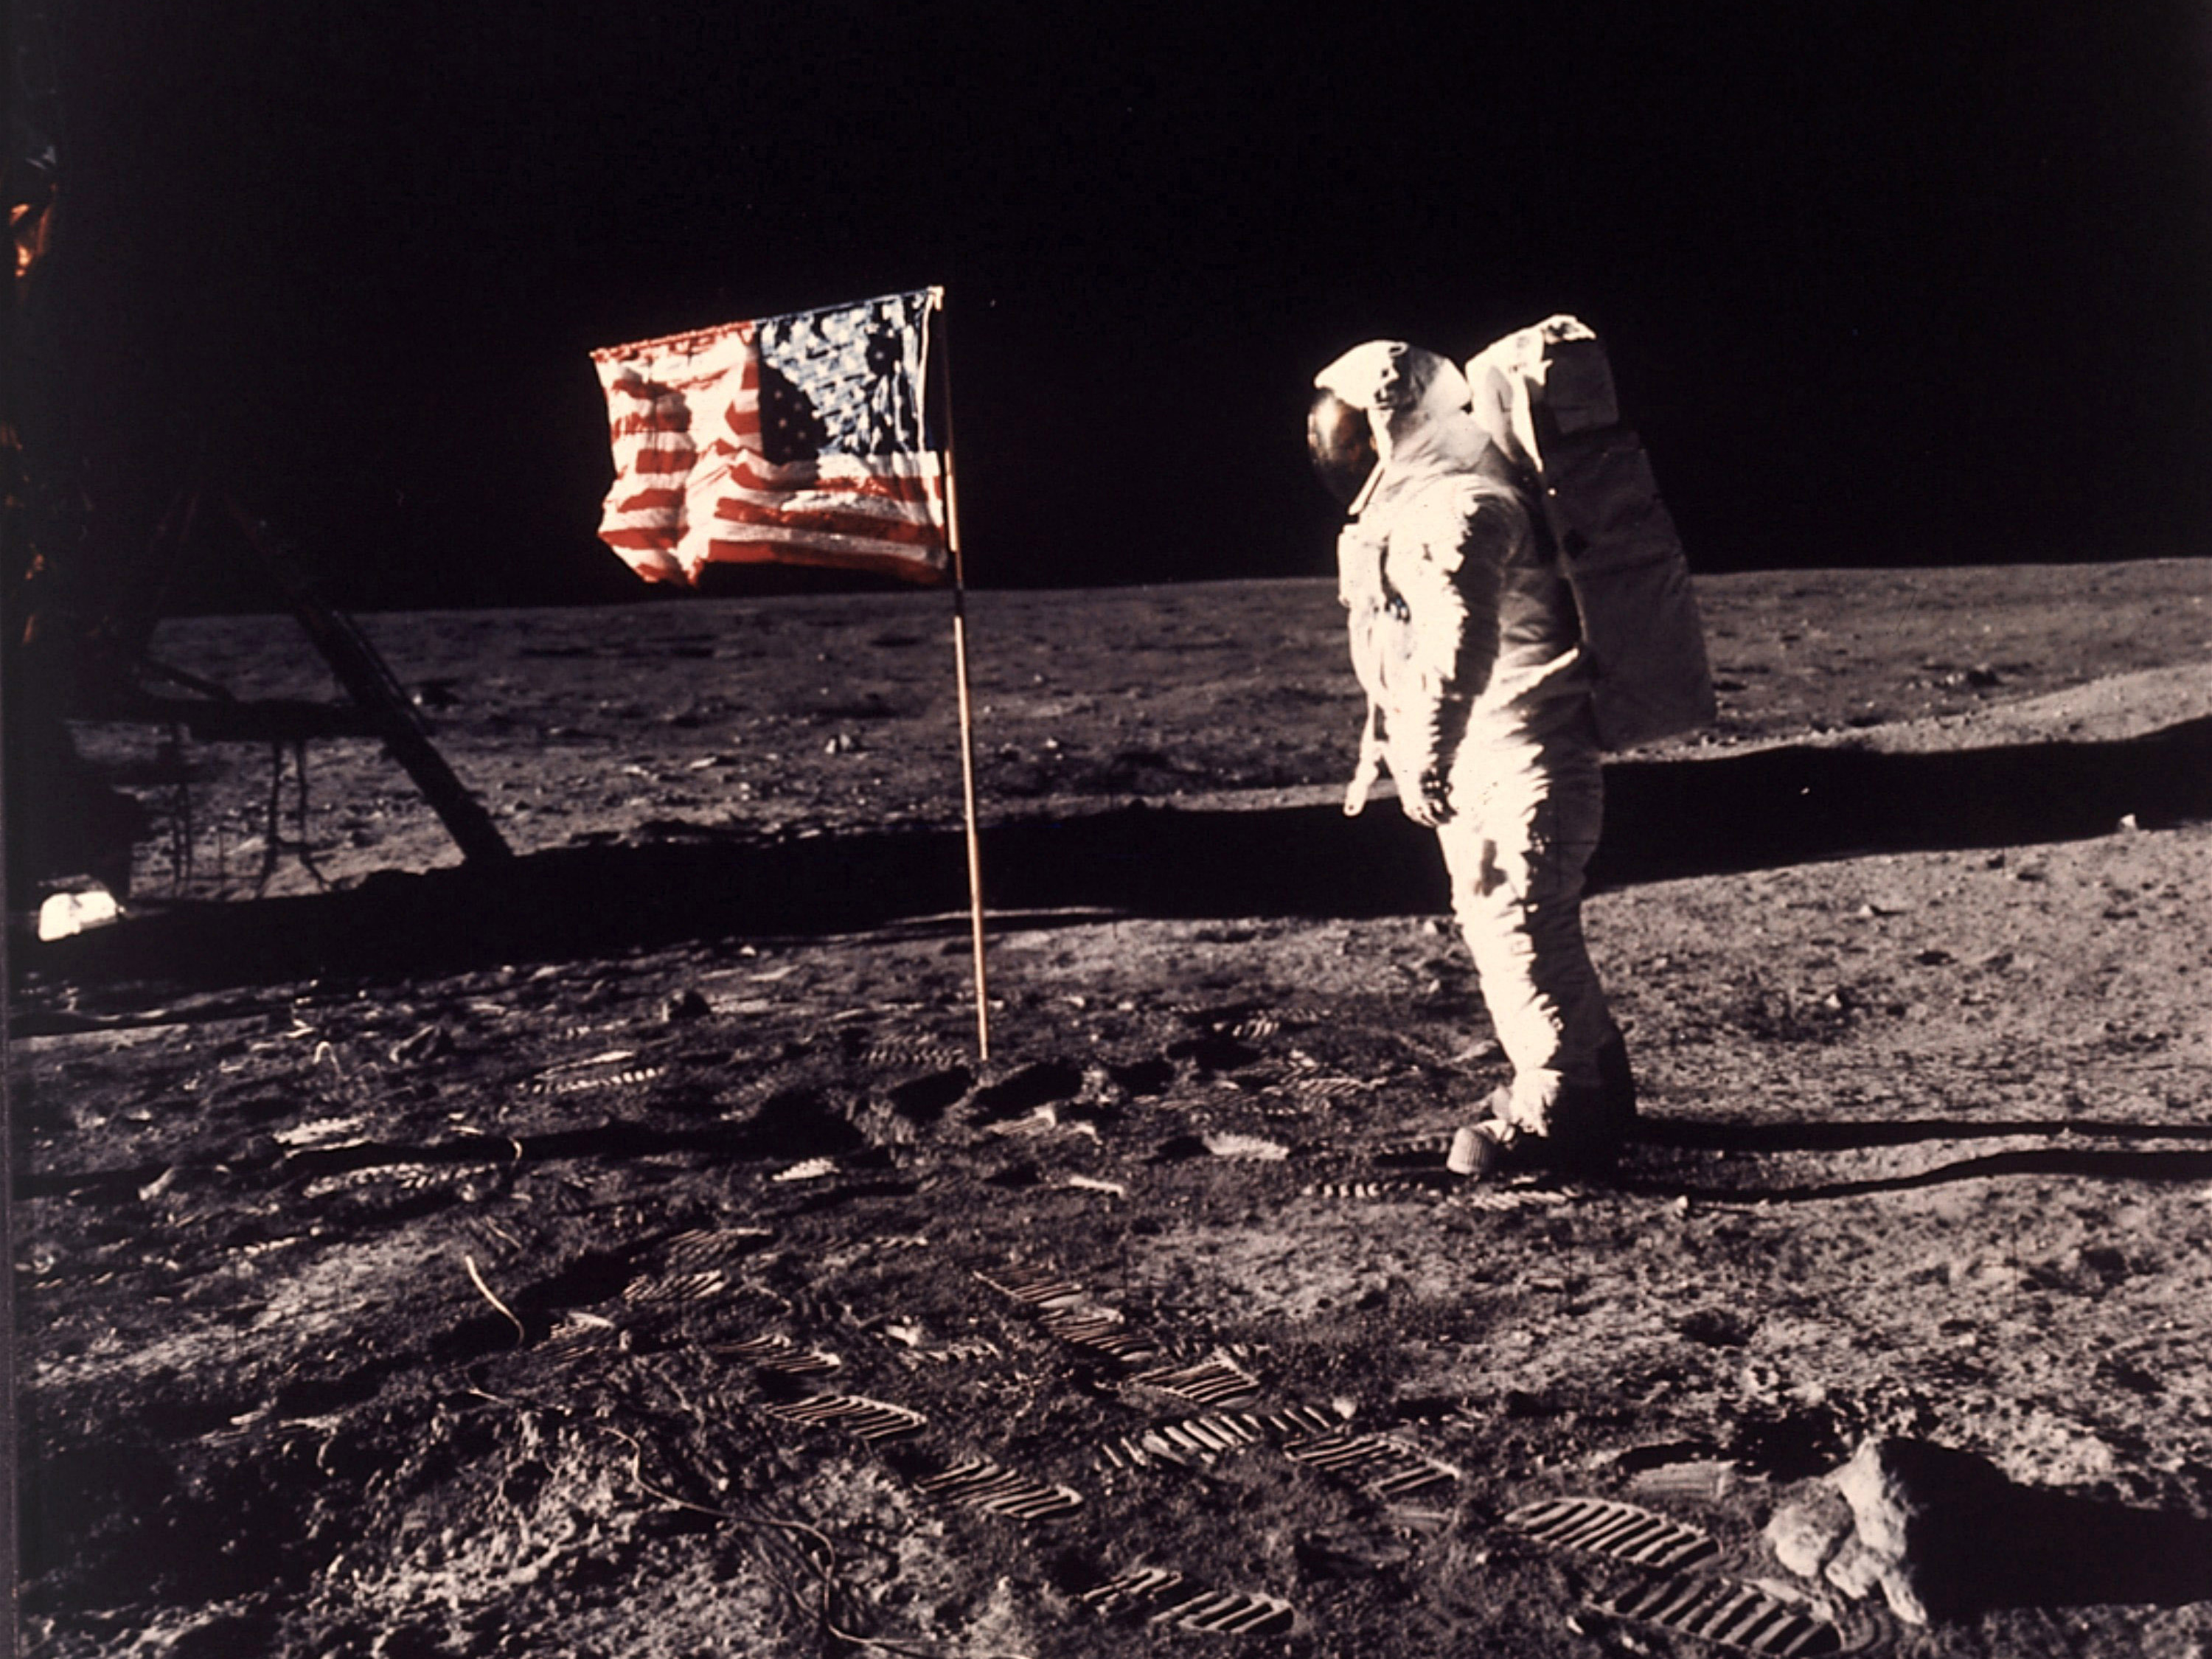 45 Years Ago, Armstrong Took His 'One Small Step'